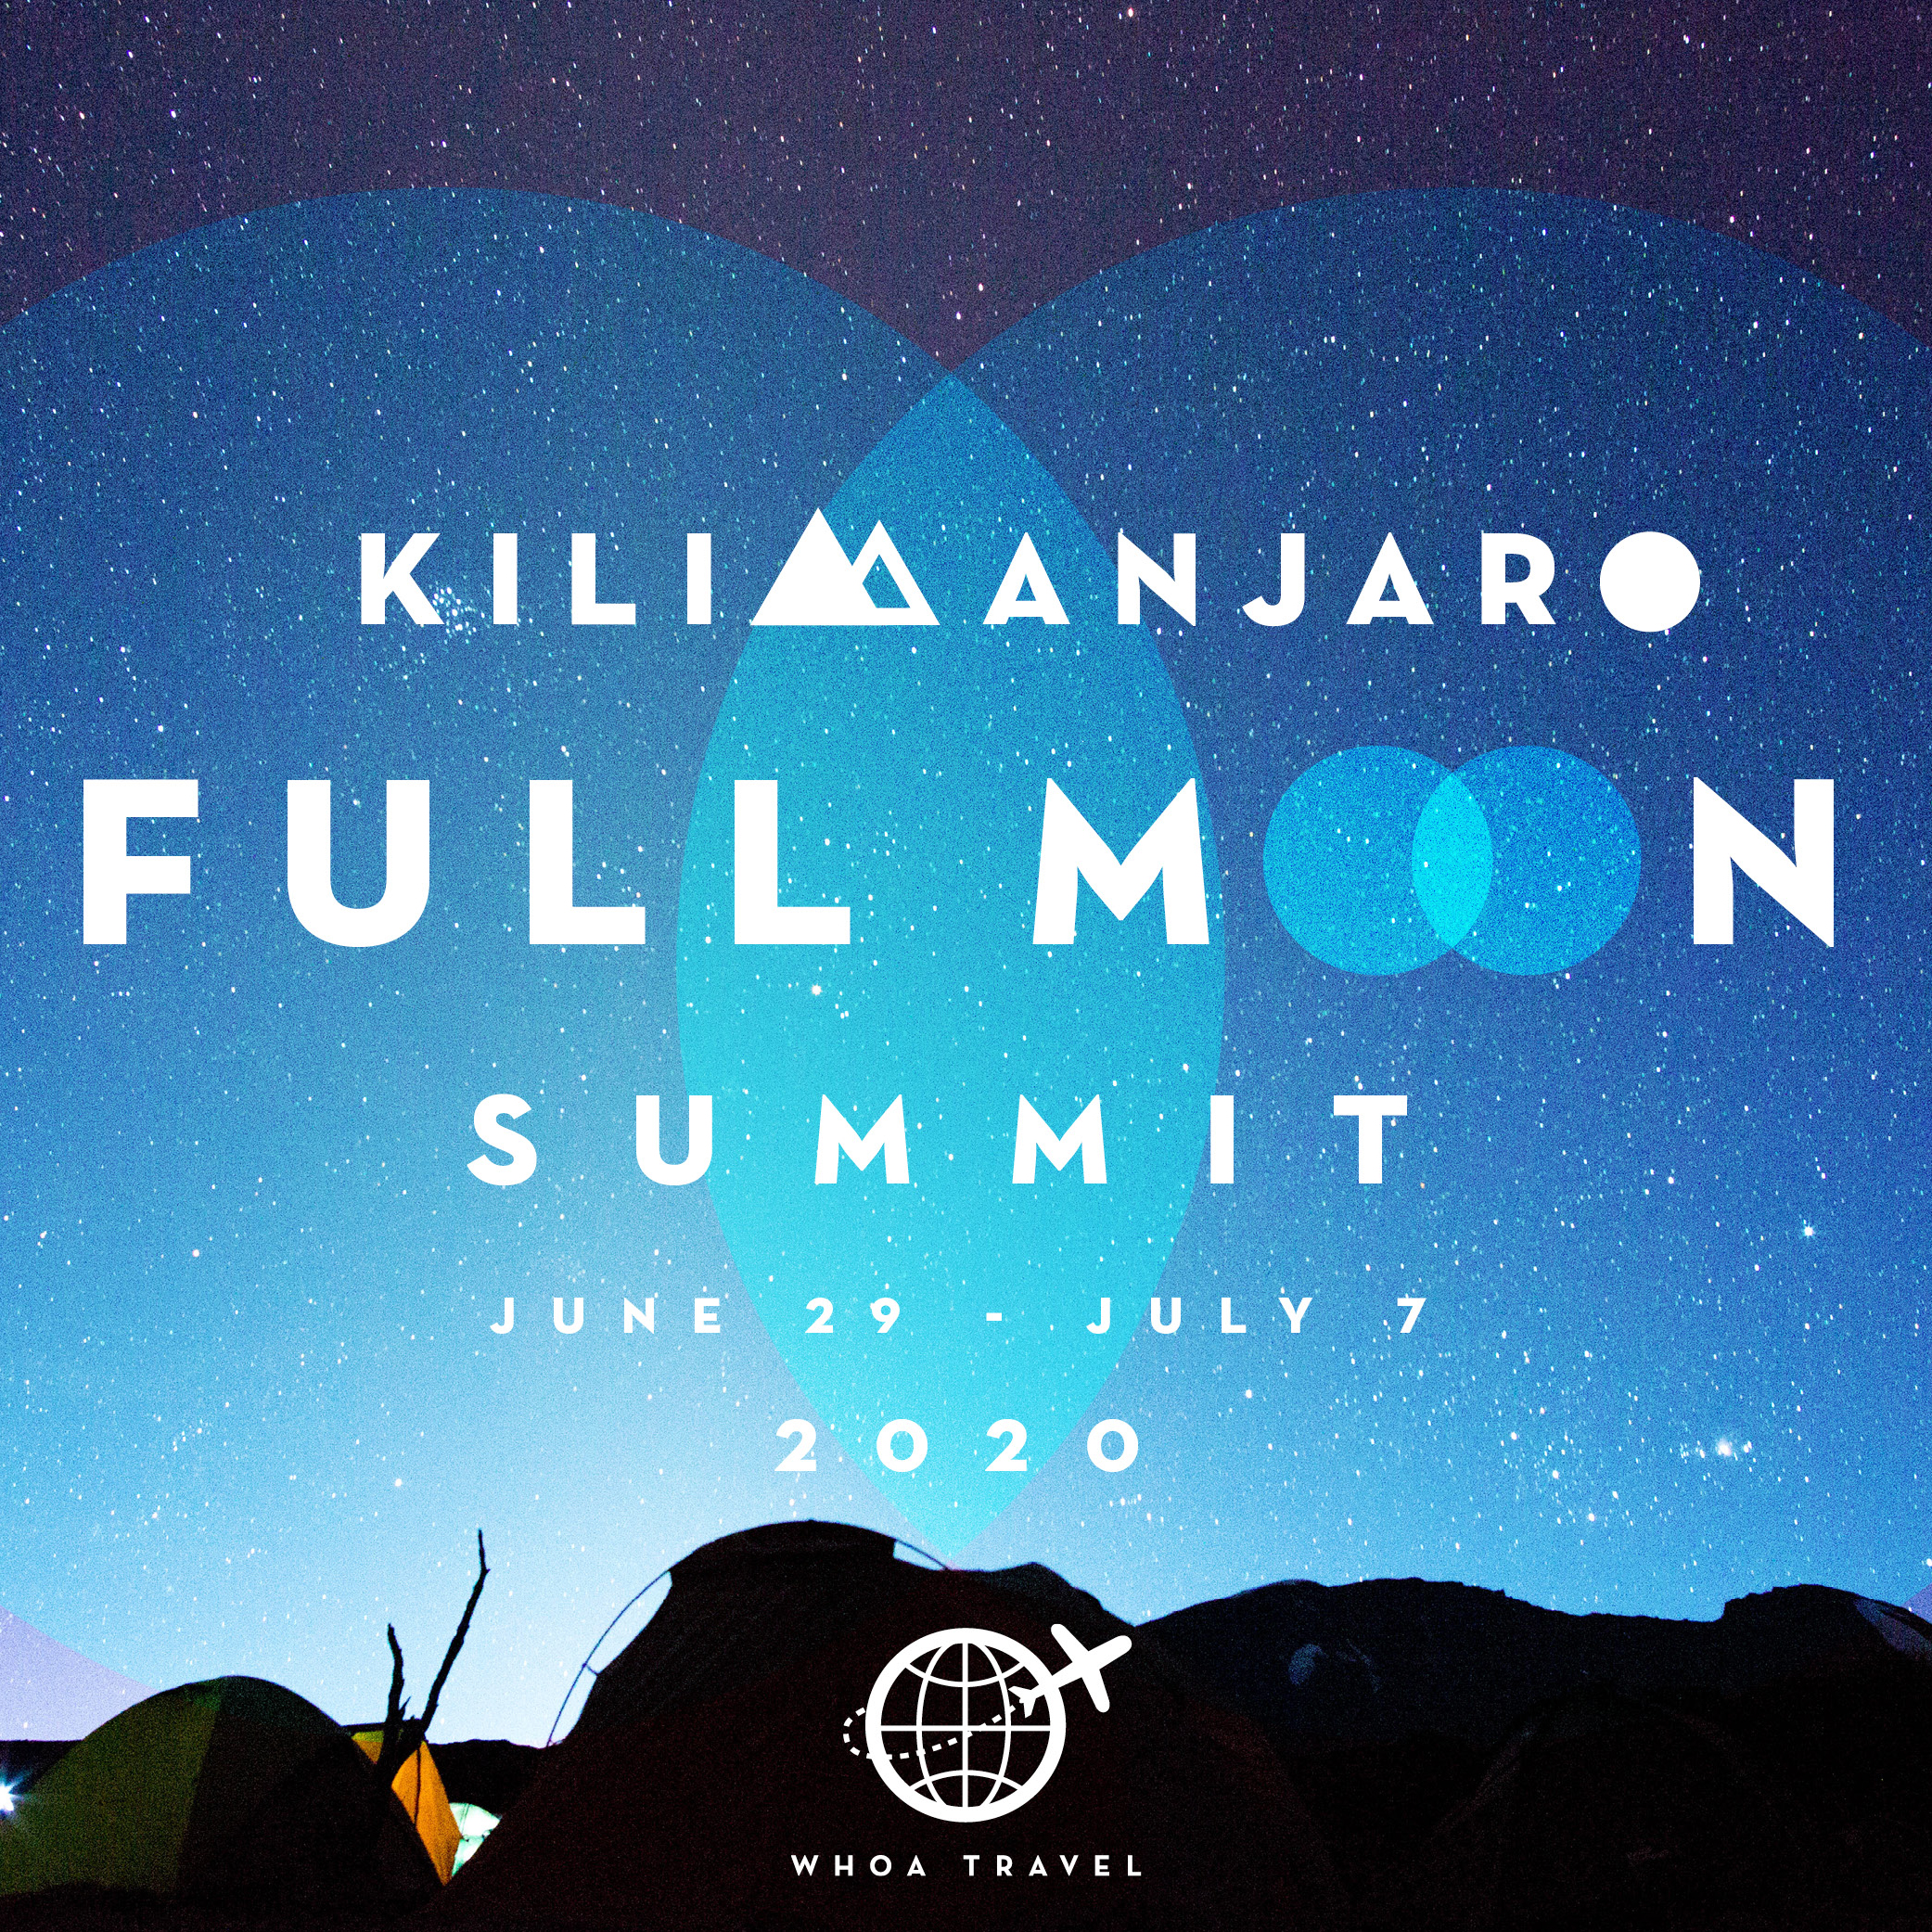 JUN 29 - JUL 7 - 2020FULL MOON SUMMITTrek to Africa's highest peak under the glow of a full moon